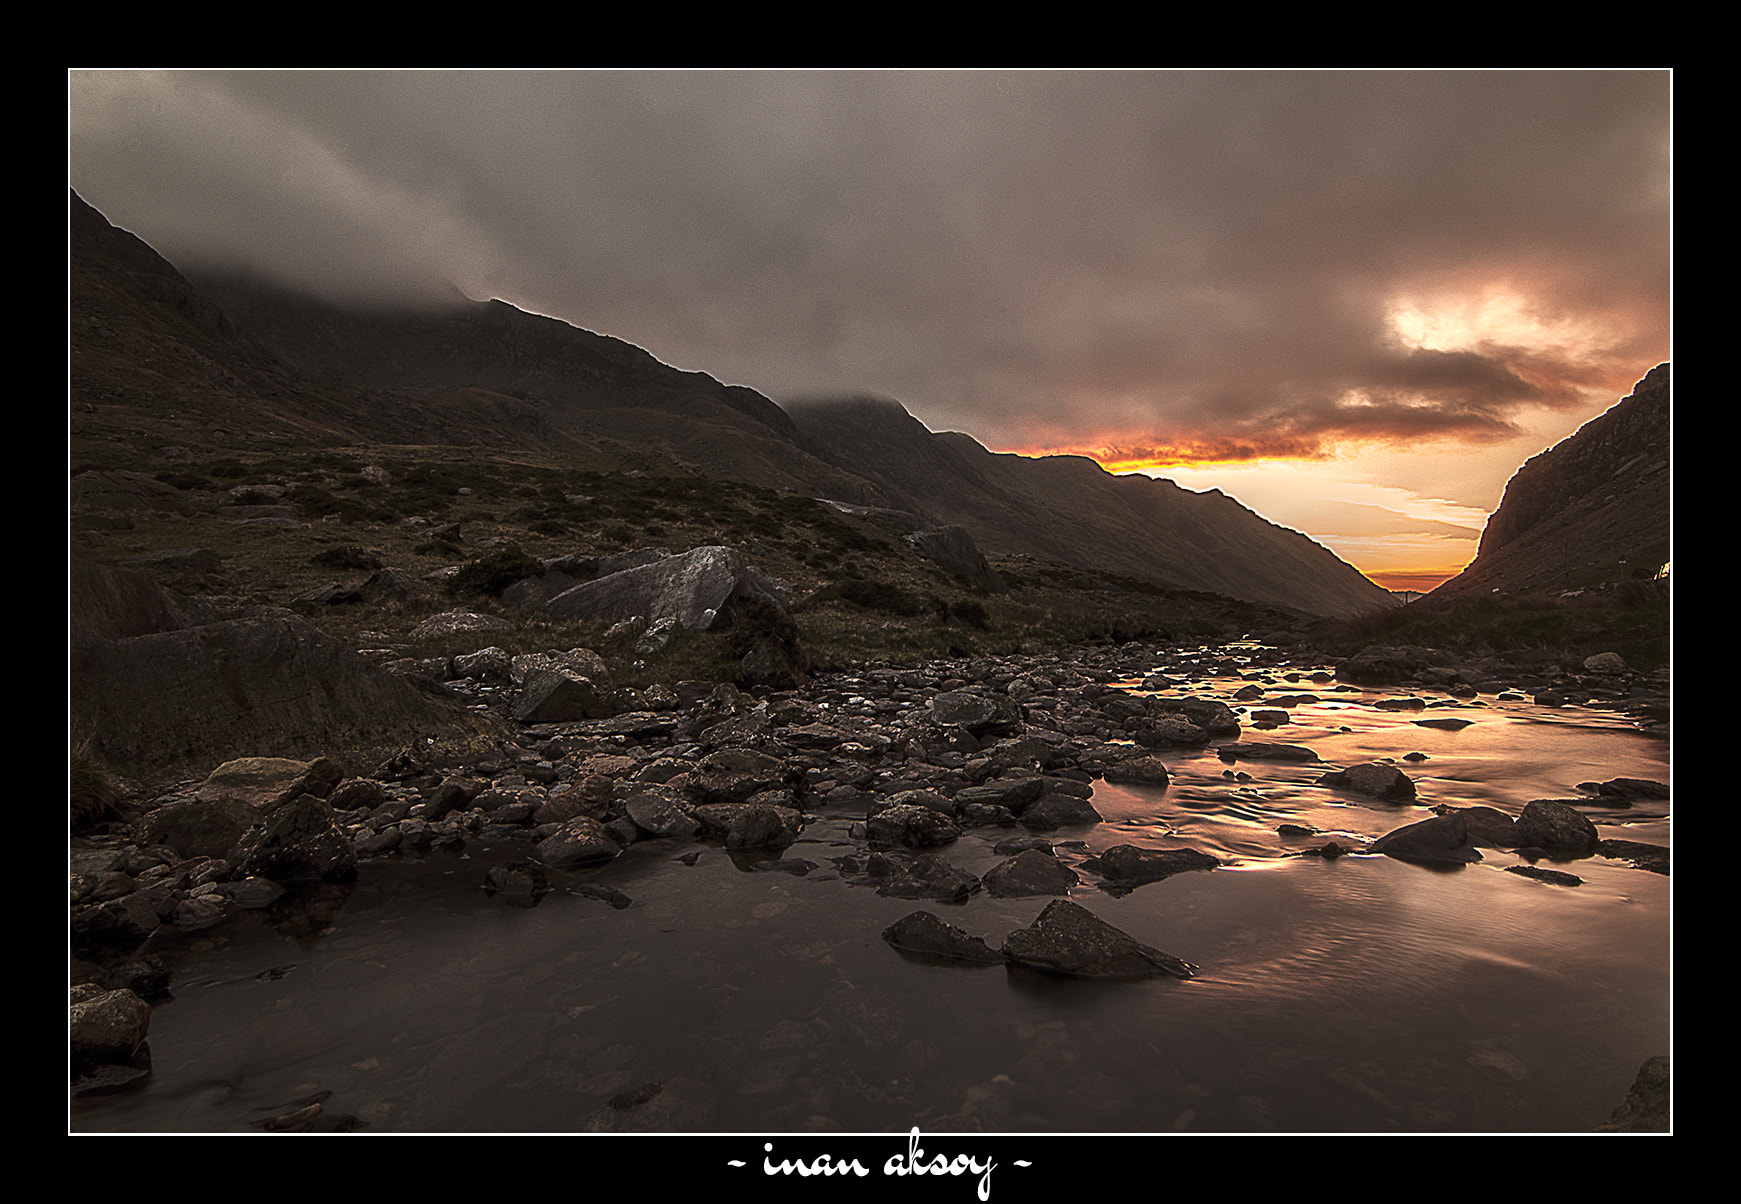 Photograph Sunset in Snowdonia by Inan Aksoy on 500px